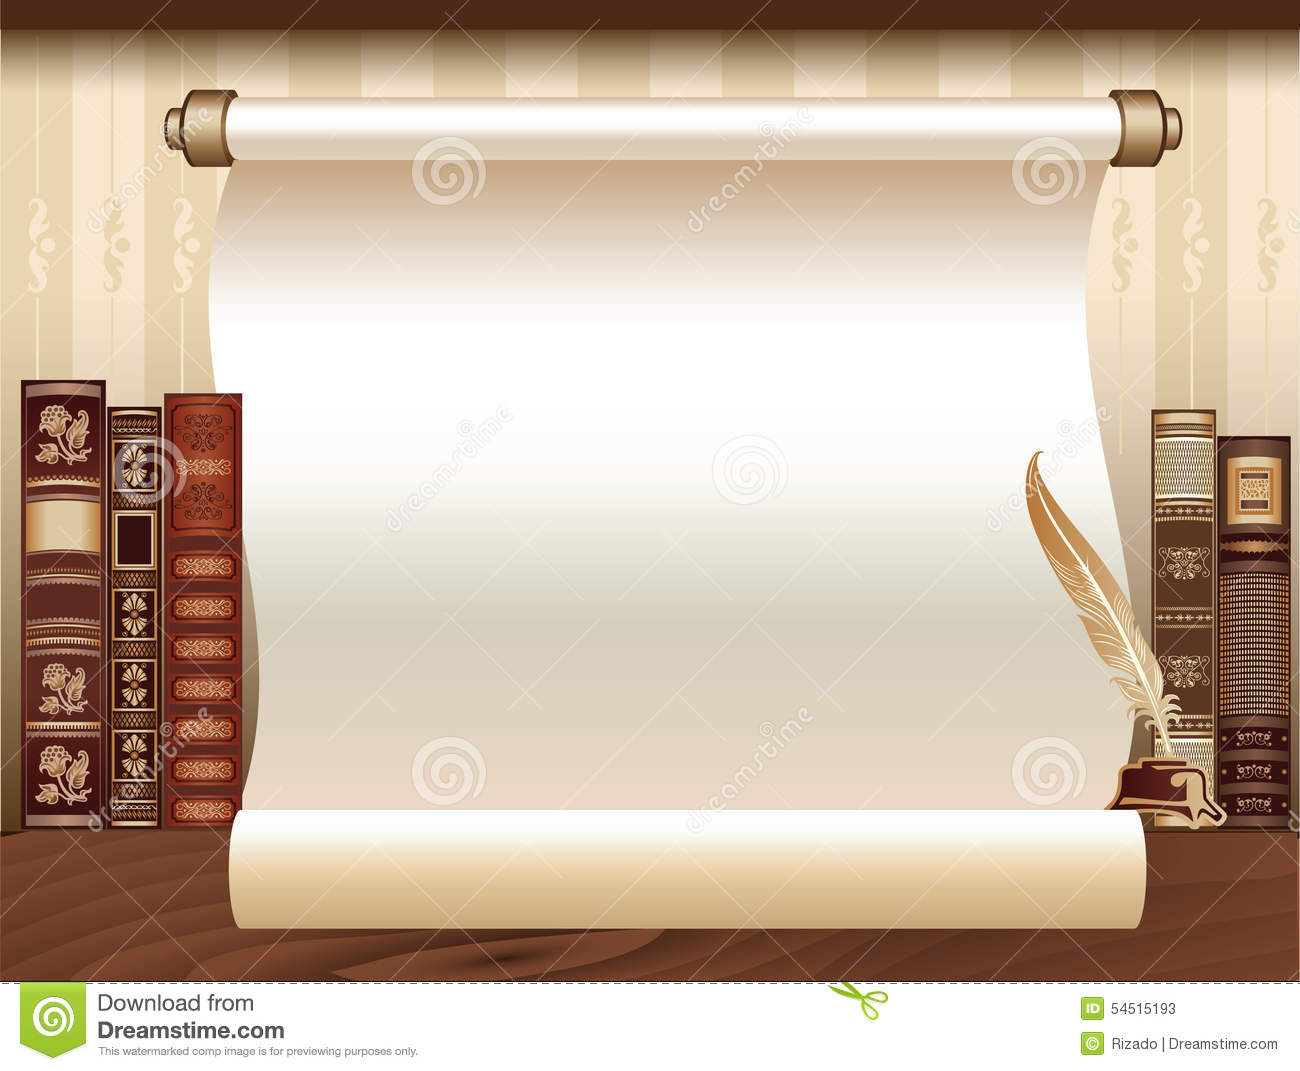 vintage book template stock vector illustration of backdrop 54515193